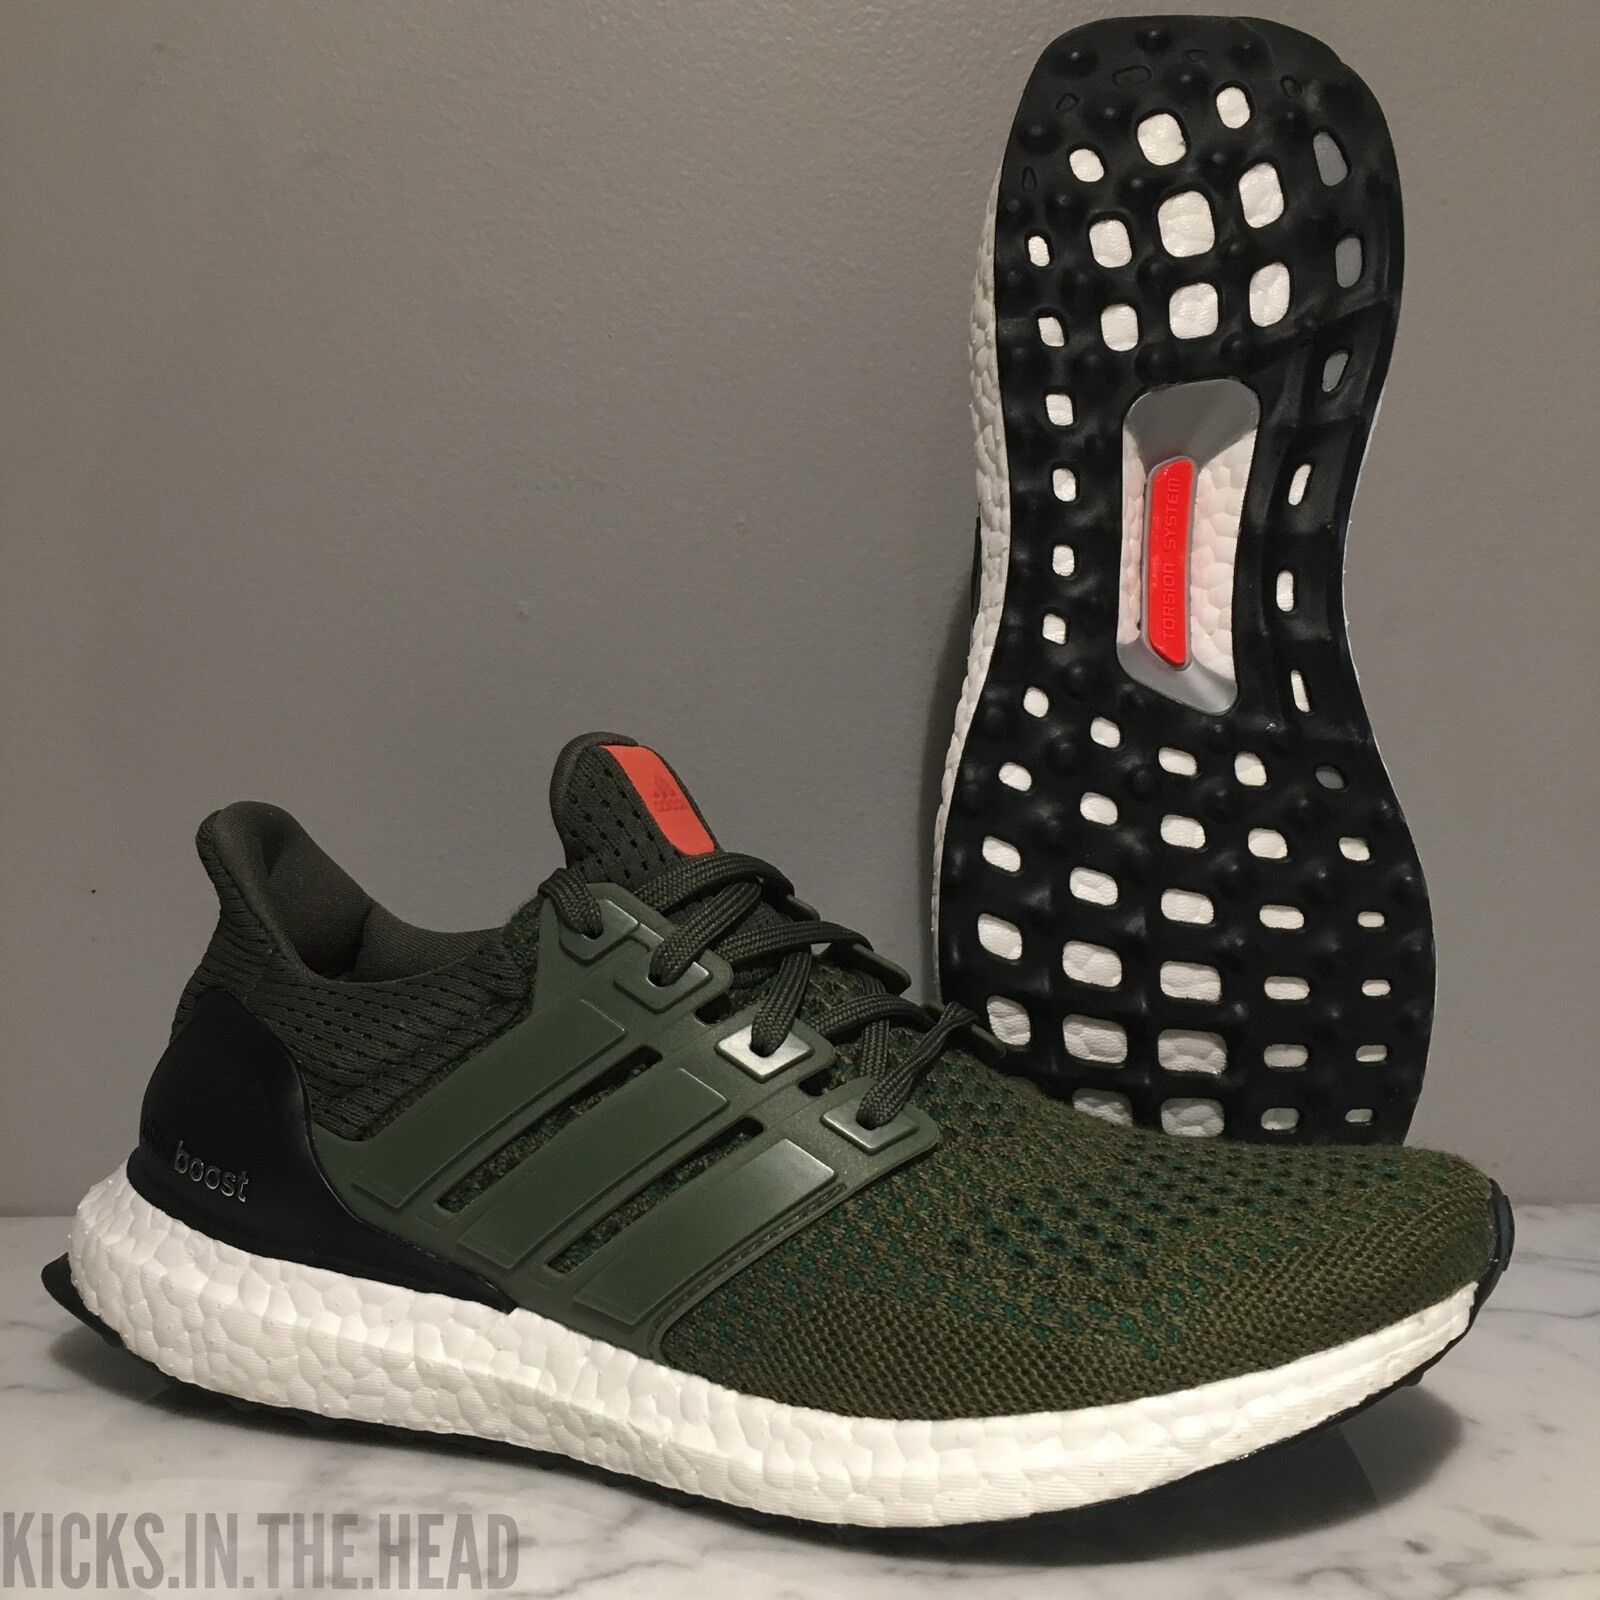 adidas ULTRA BOOST LTD 1.0 'OLIVE' - SIZE 6.5 - AF5837 BASE GREEN